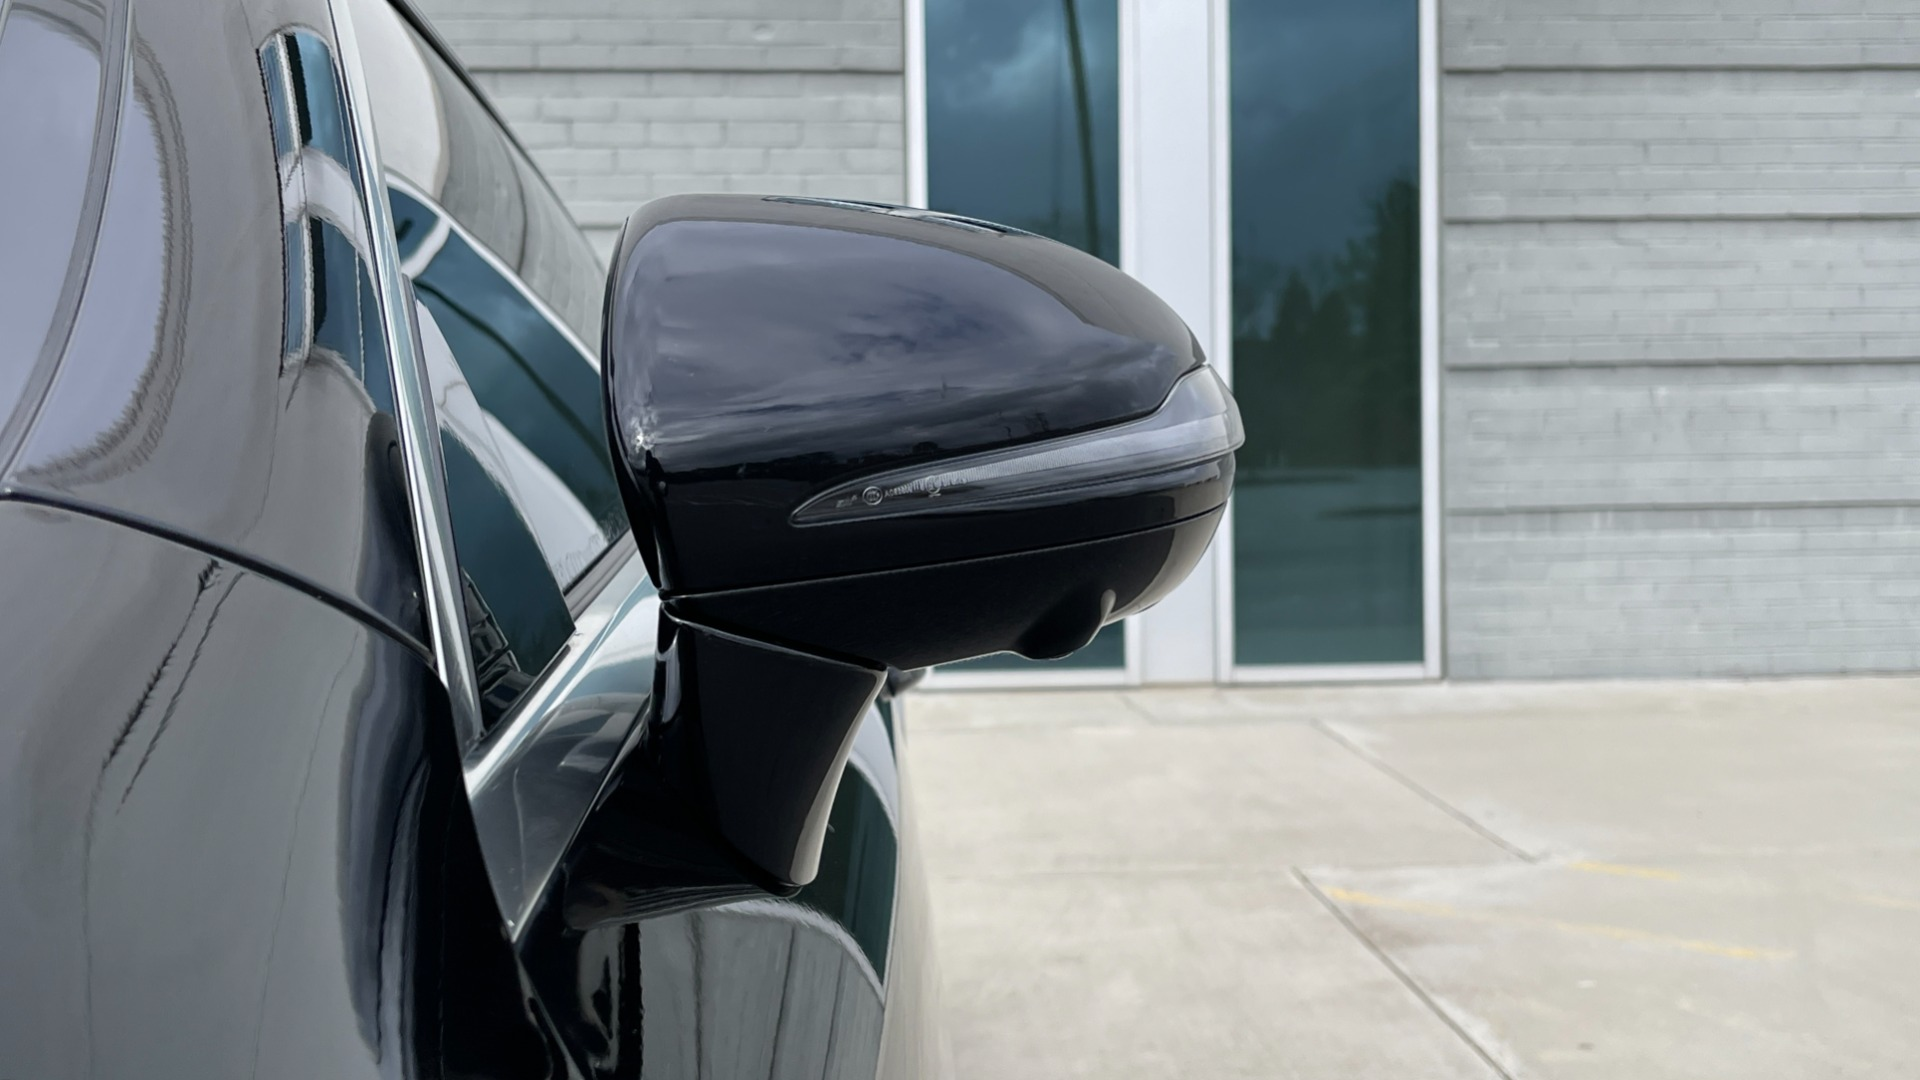 Used 2019 Mercedes-Benz E-CLASS E 450 PREMIUM / AMG LINE / PARK ASST / BSA / BURMESTER for sale $49,995 at Formula Imports in Charlotte NC 28227 12